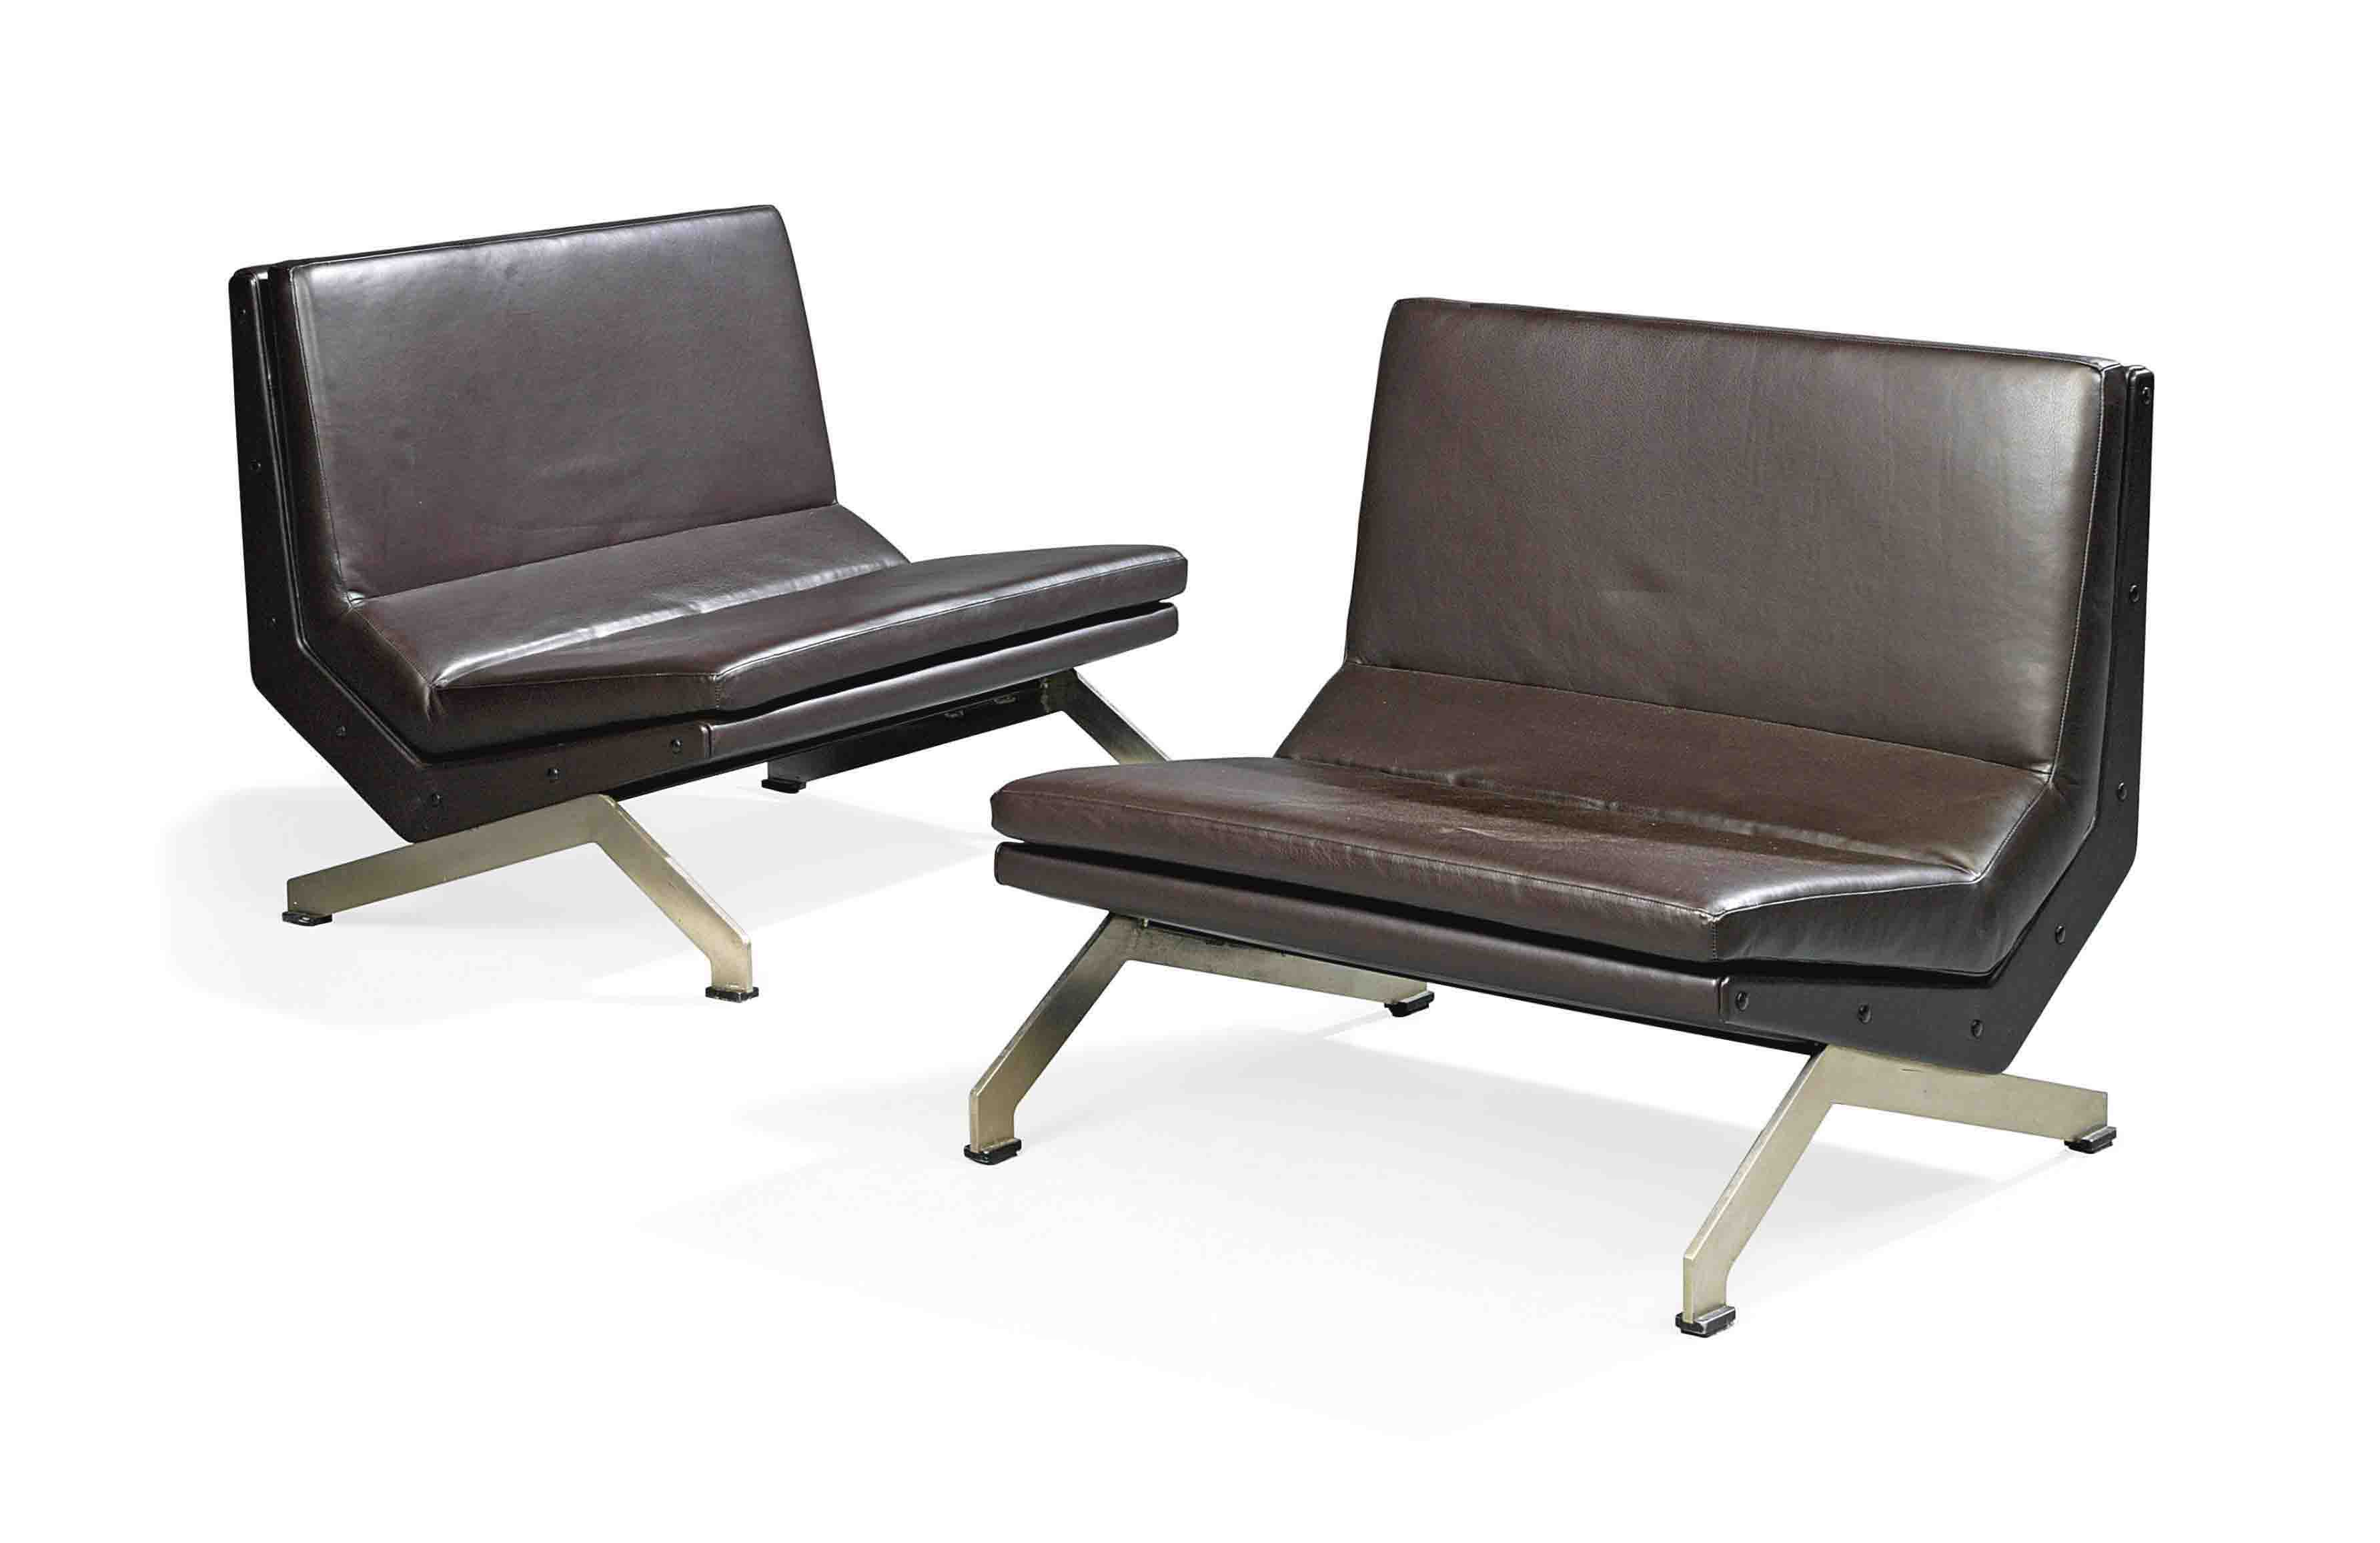 Leather Upholstered Lounge A Pair Of Fornarola Brushed Steel And Leather Upholstered